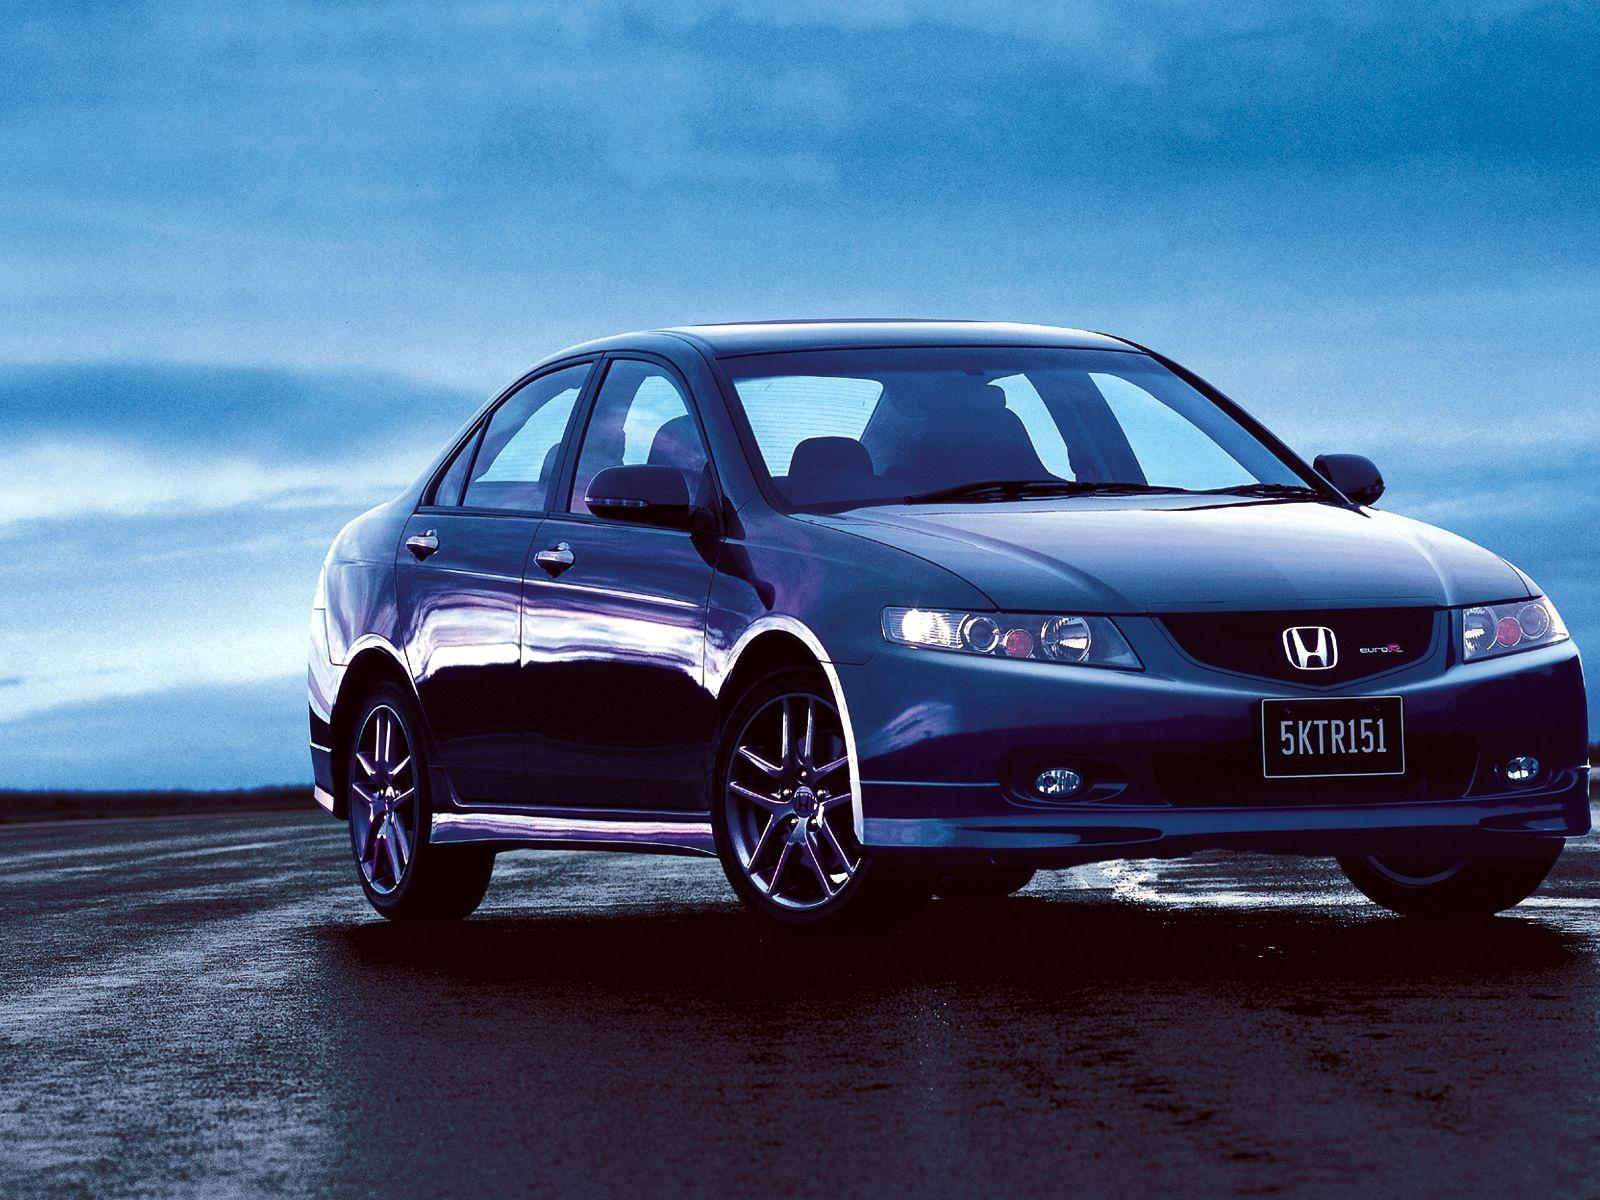 Honda Accord Desktop Background Wallpapers #11875| Car Pictures Website